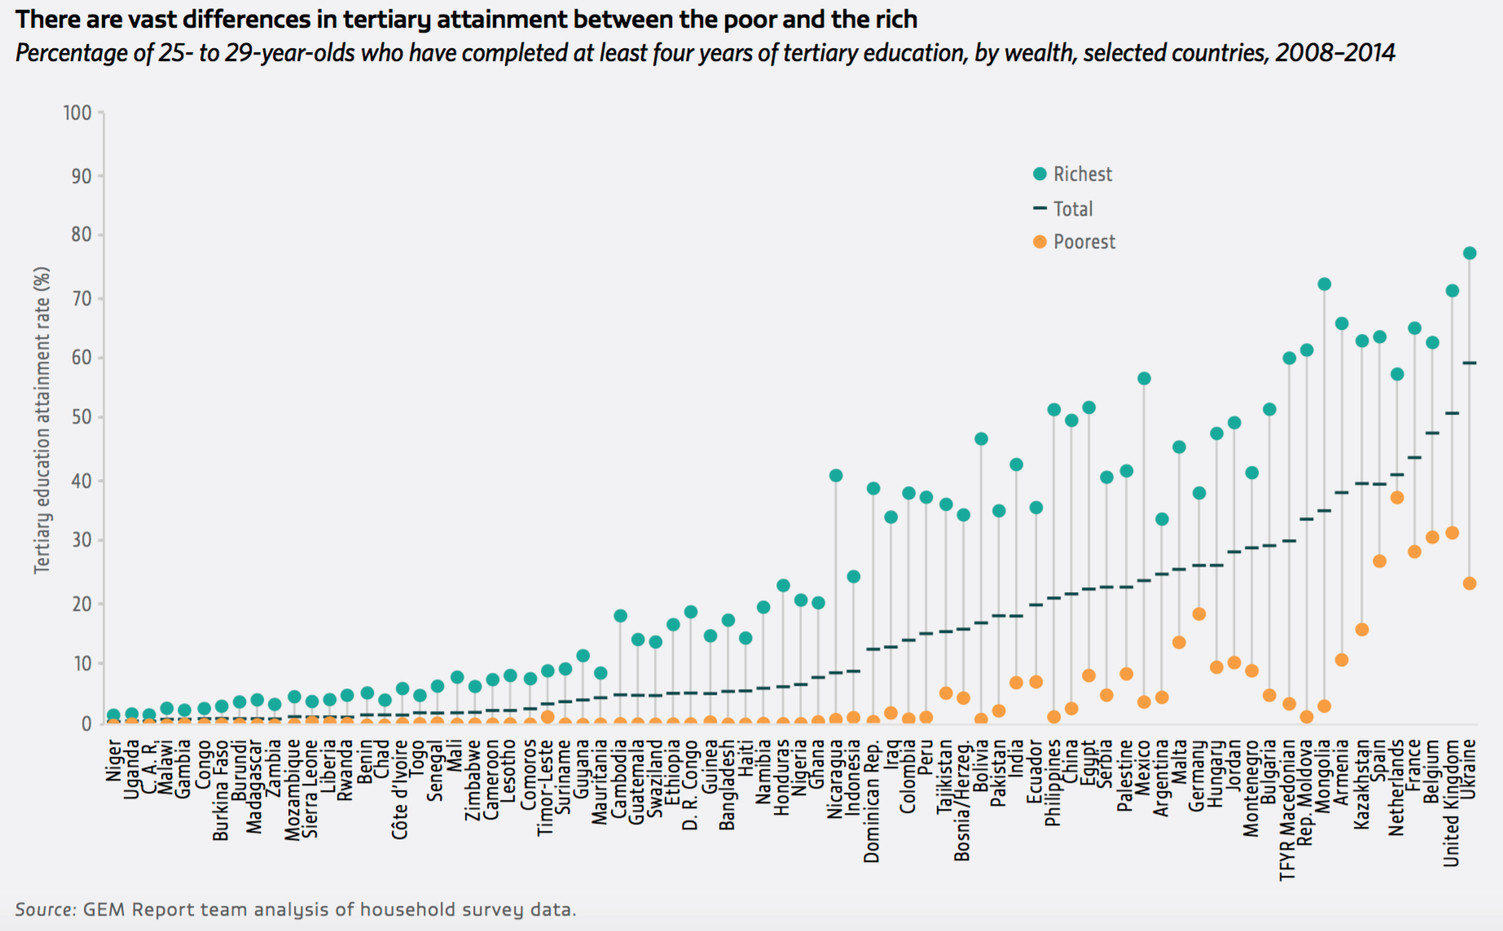 There are vast differences in tertiary attainment between the poor and the rich